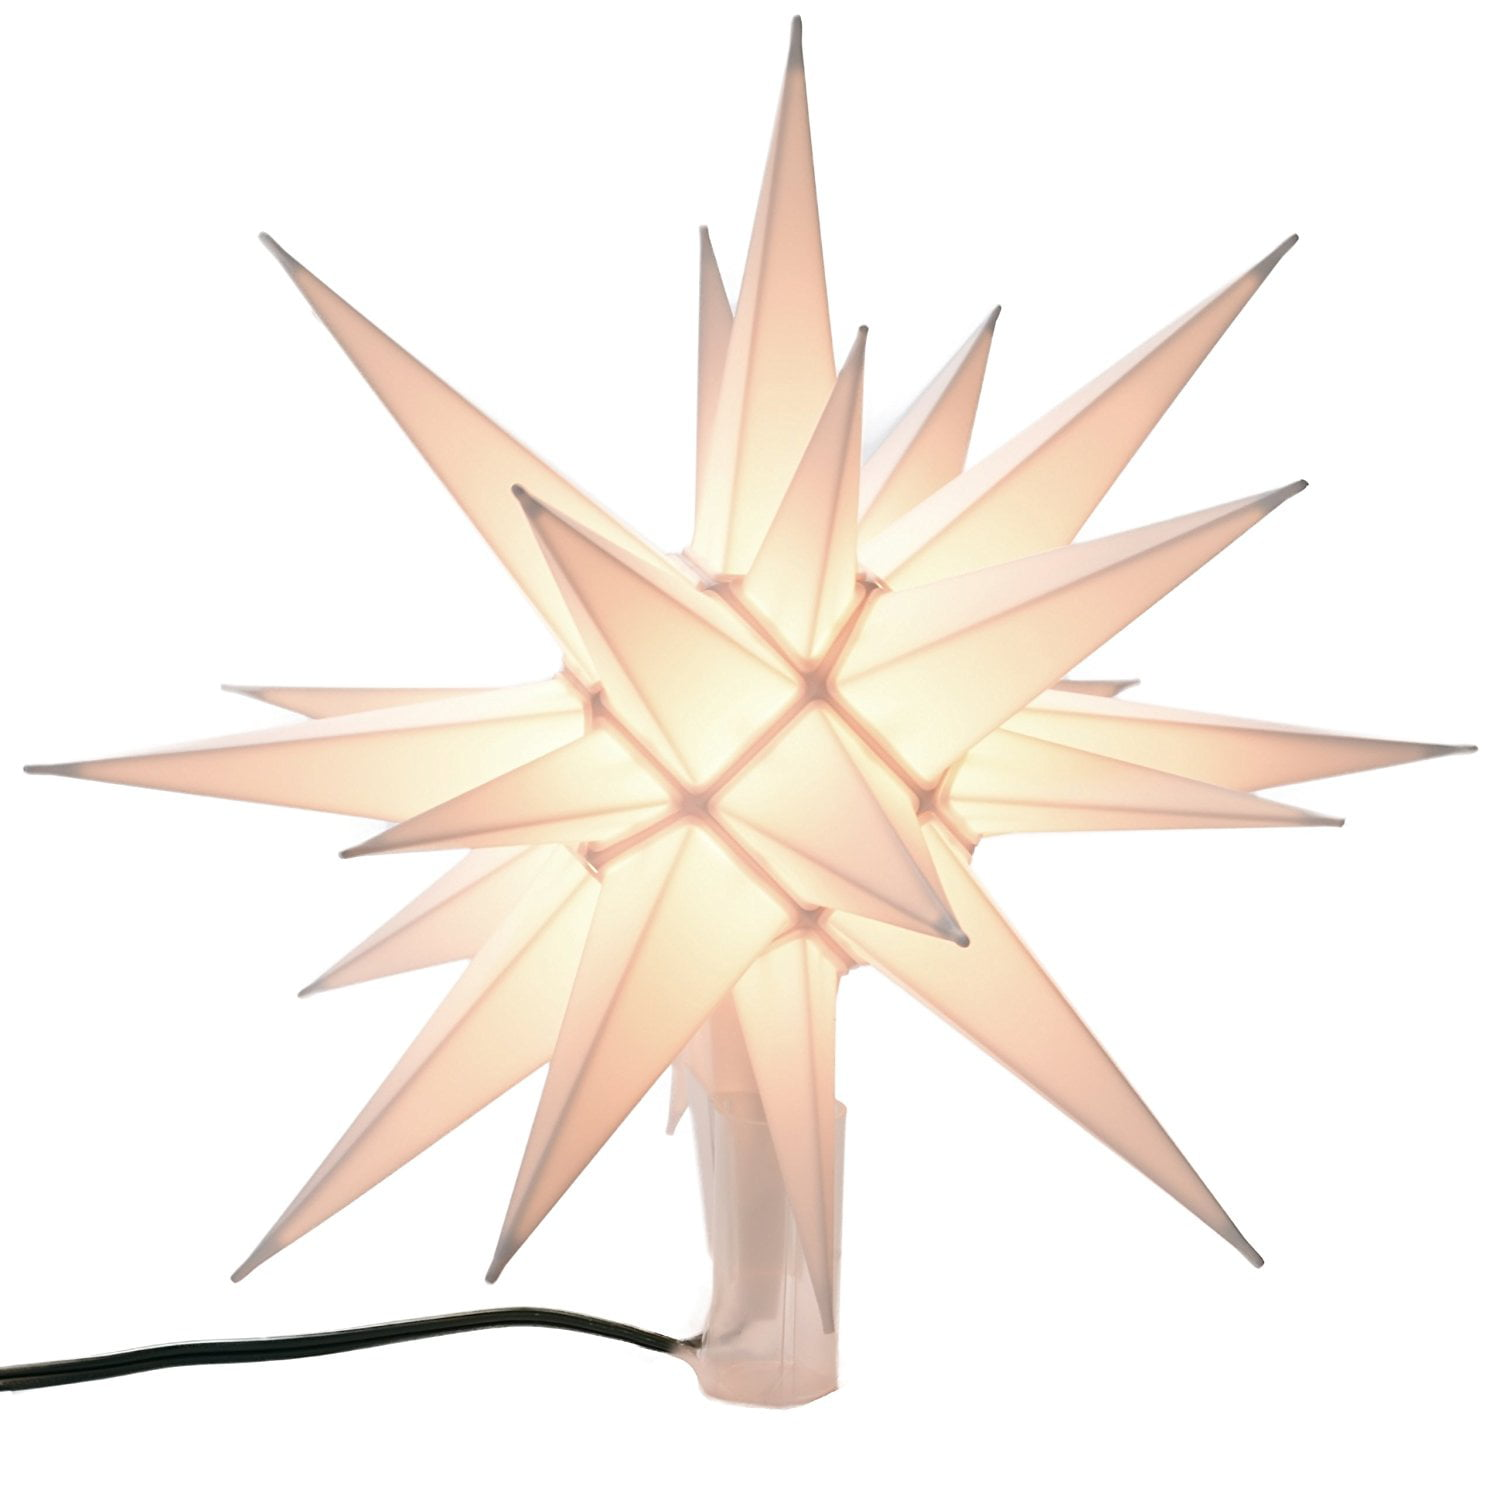 12 moravian startree topper perfect finishing touch to your tree by moravain ship from us walmartcom - Lighted Christmas Tree Toppers